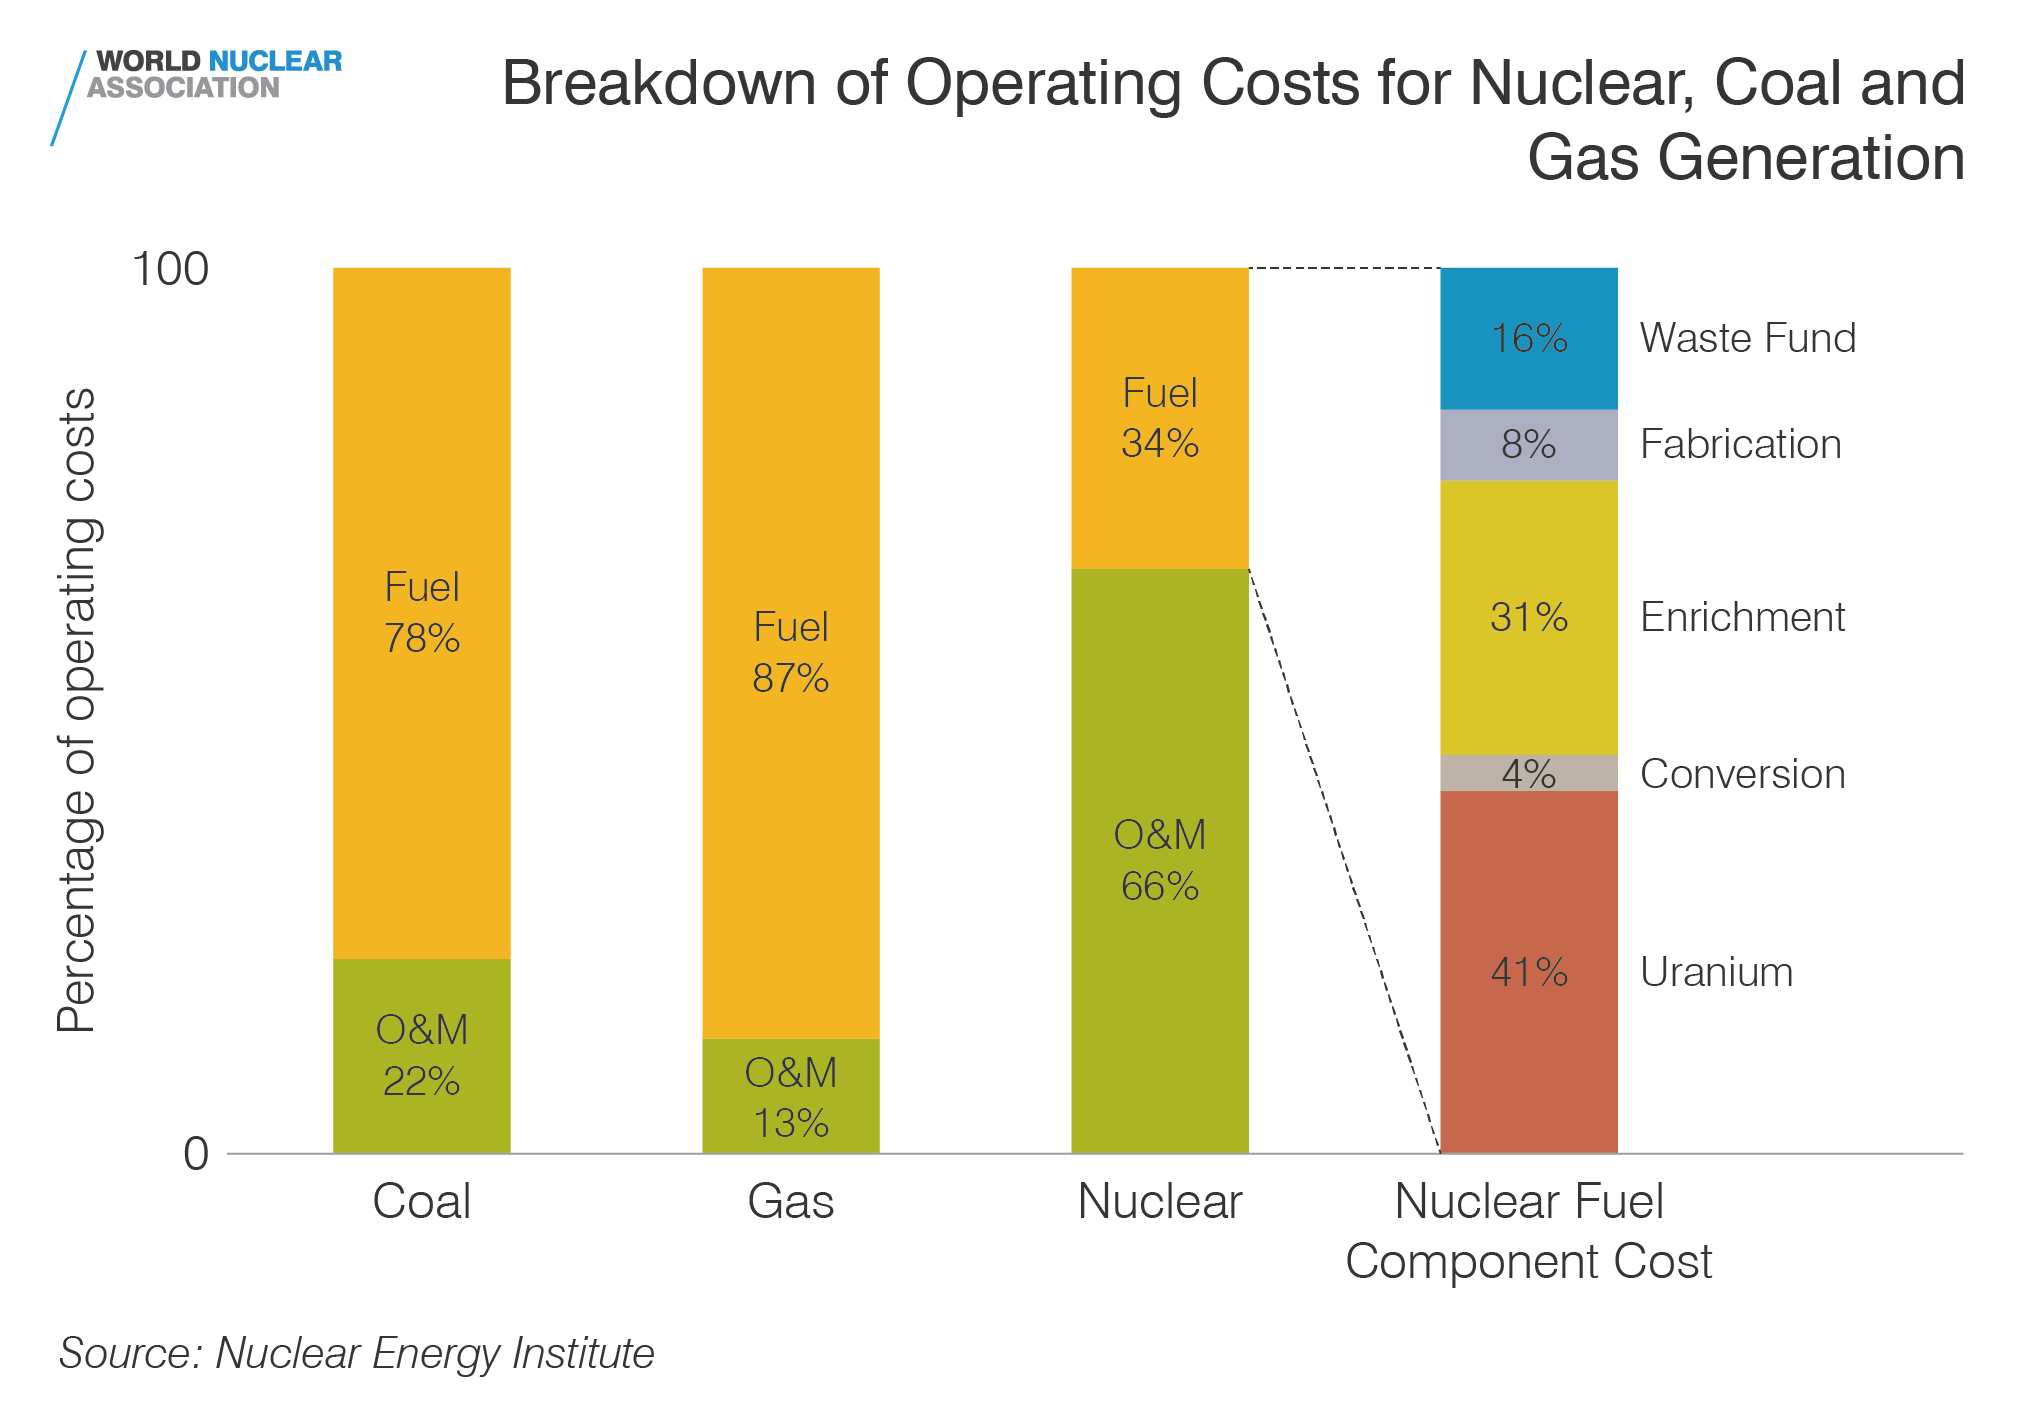 Breakdown of operating costs for nuclear, coal and gas generation